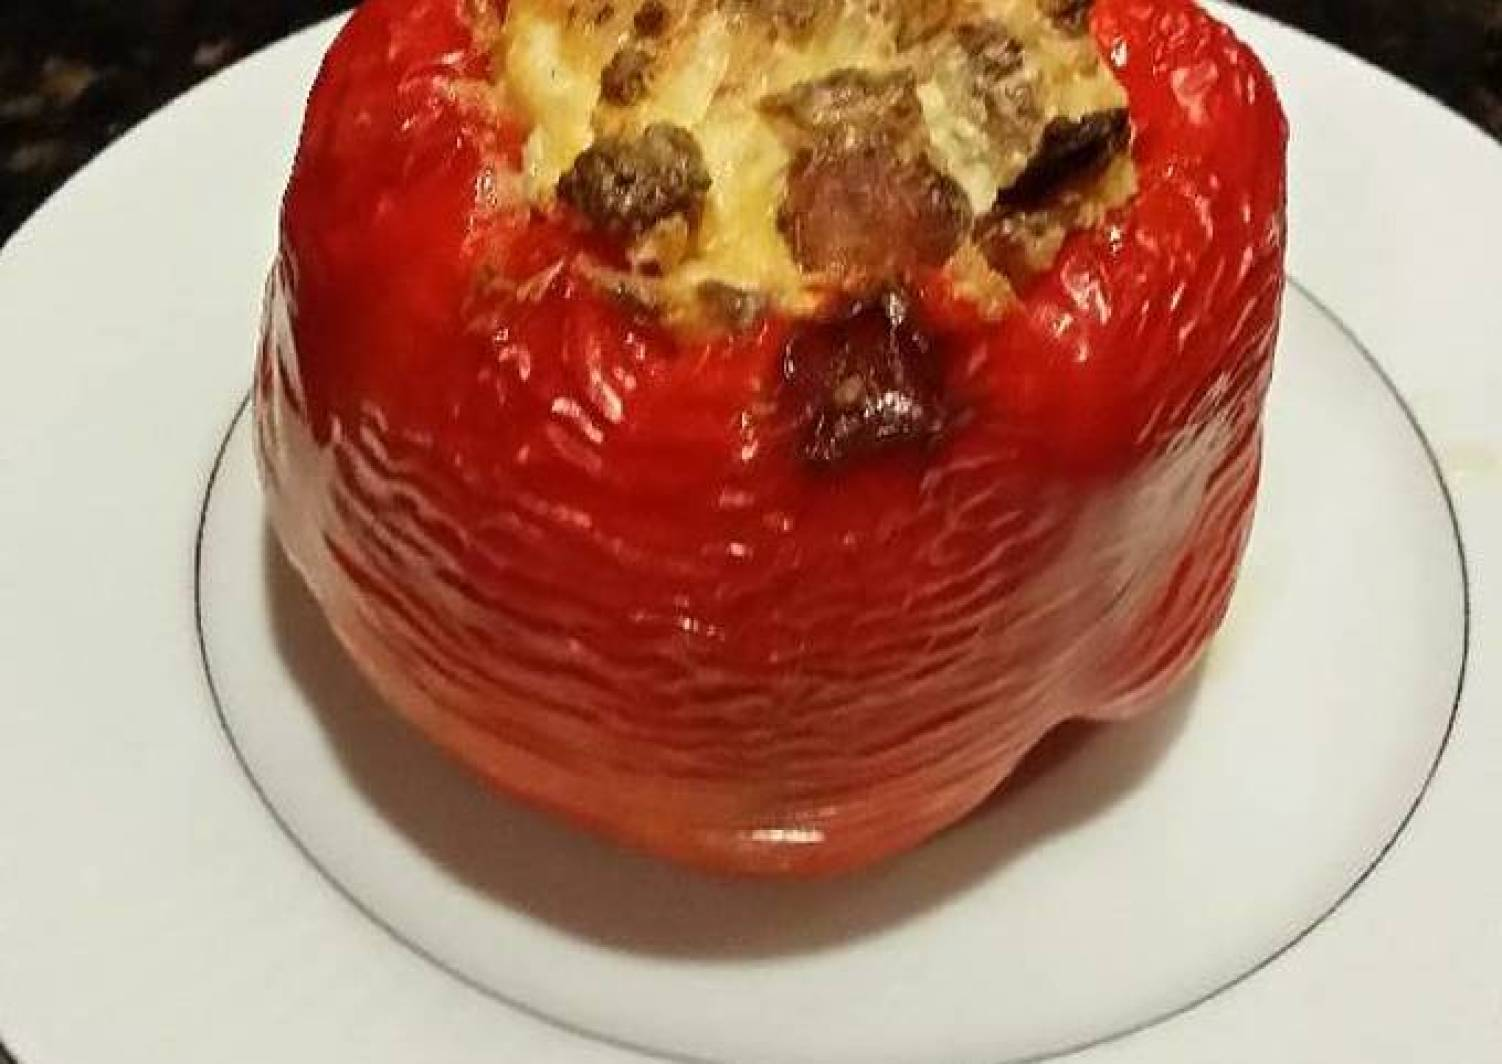 Brad's roasted red pepper stuffed with chicken apple sausage